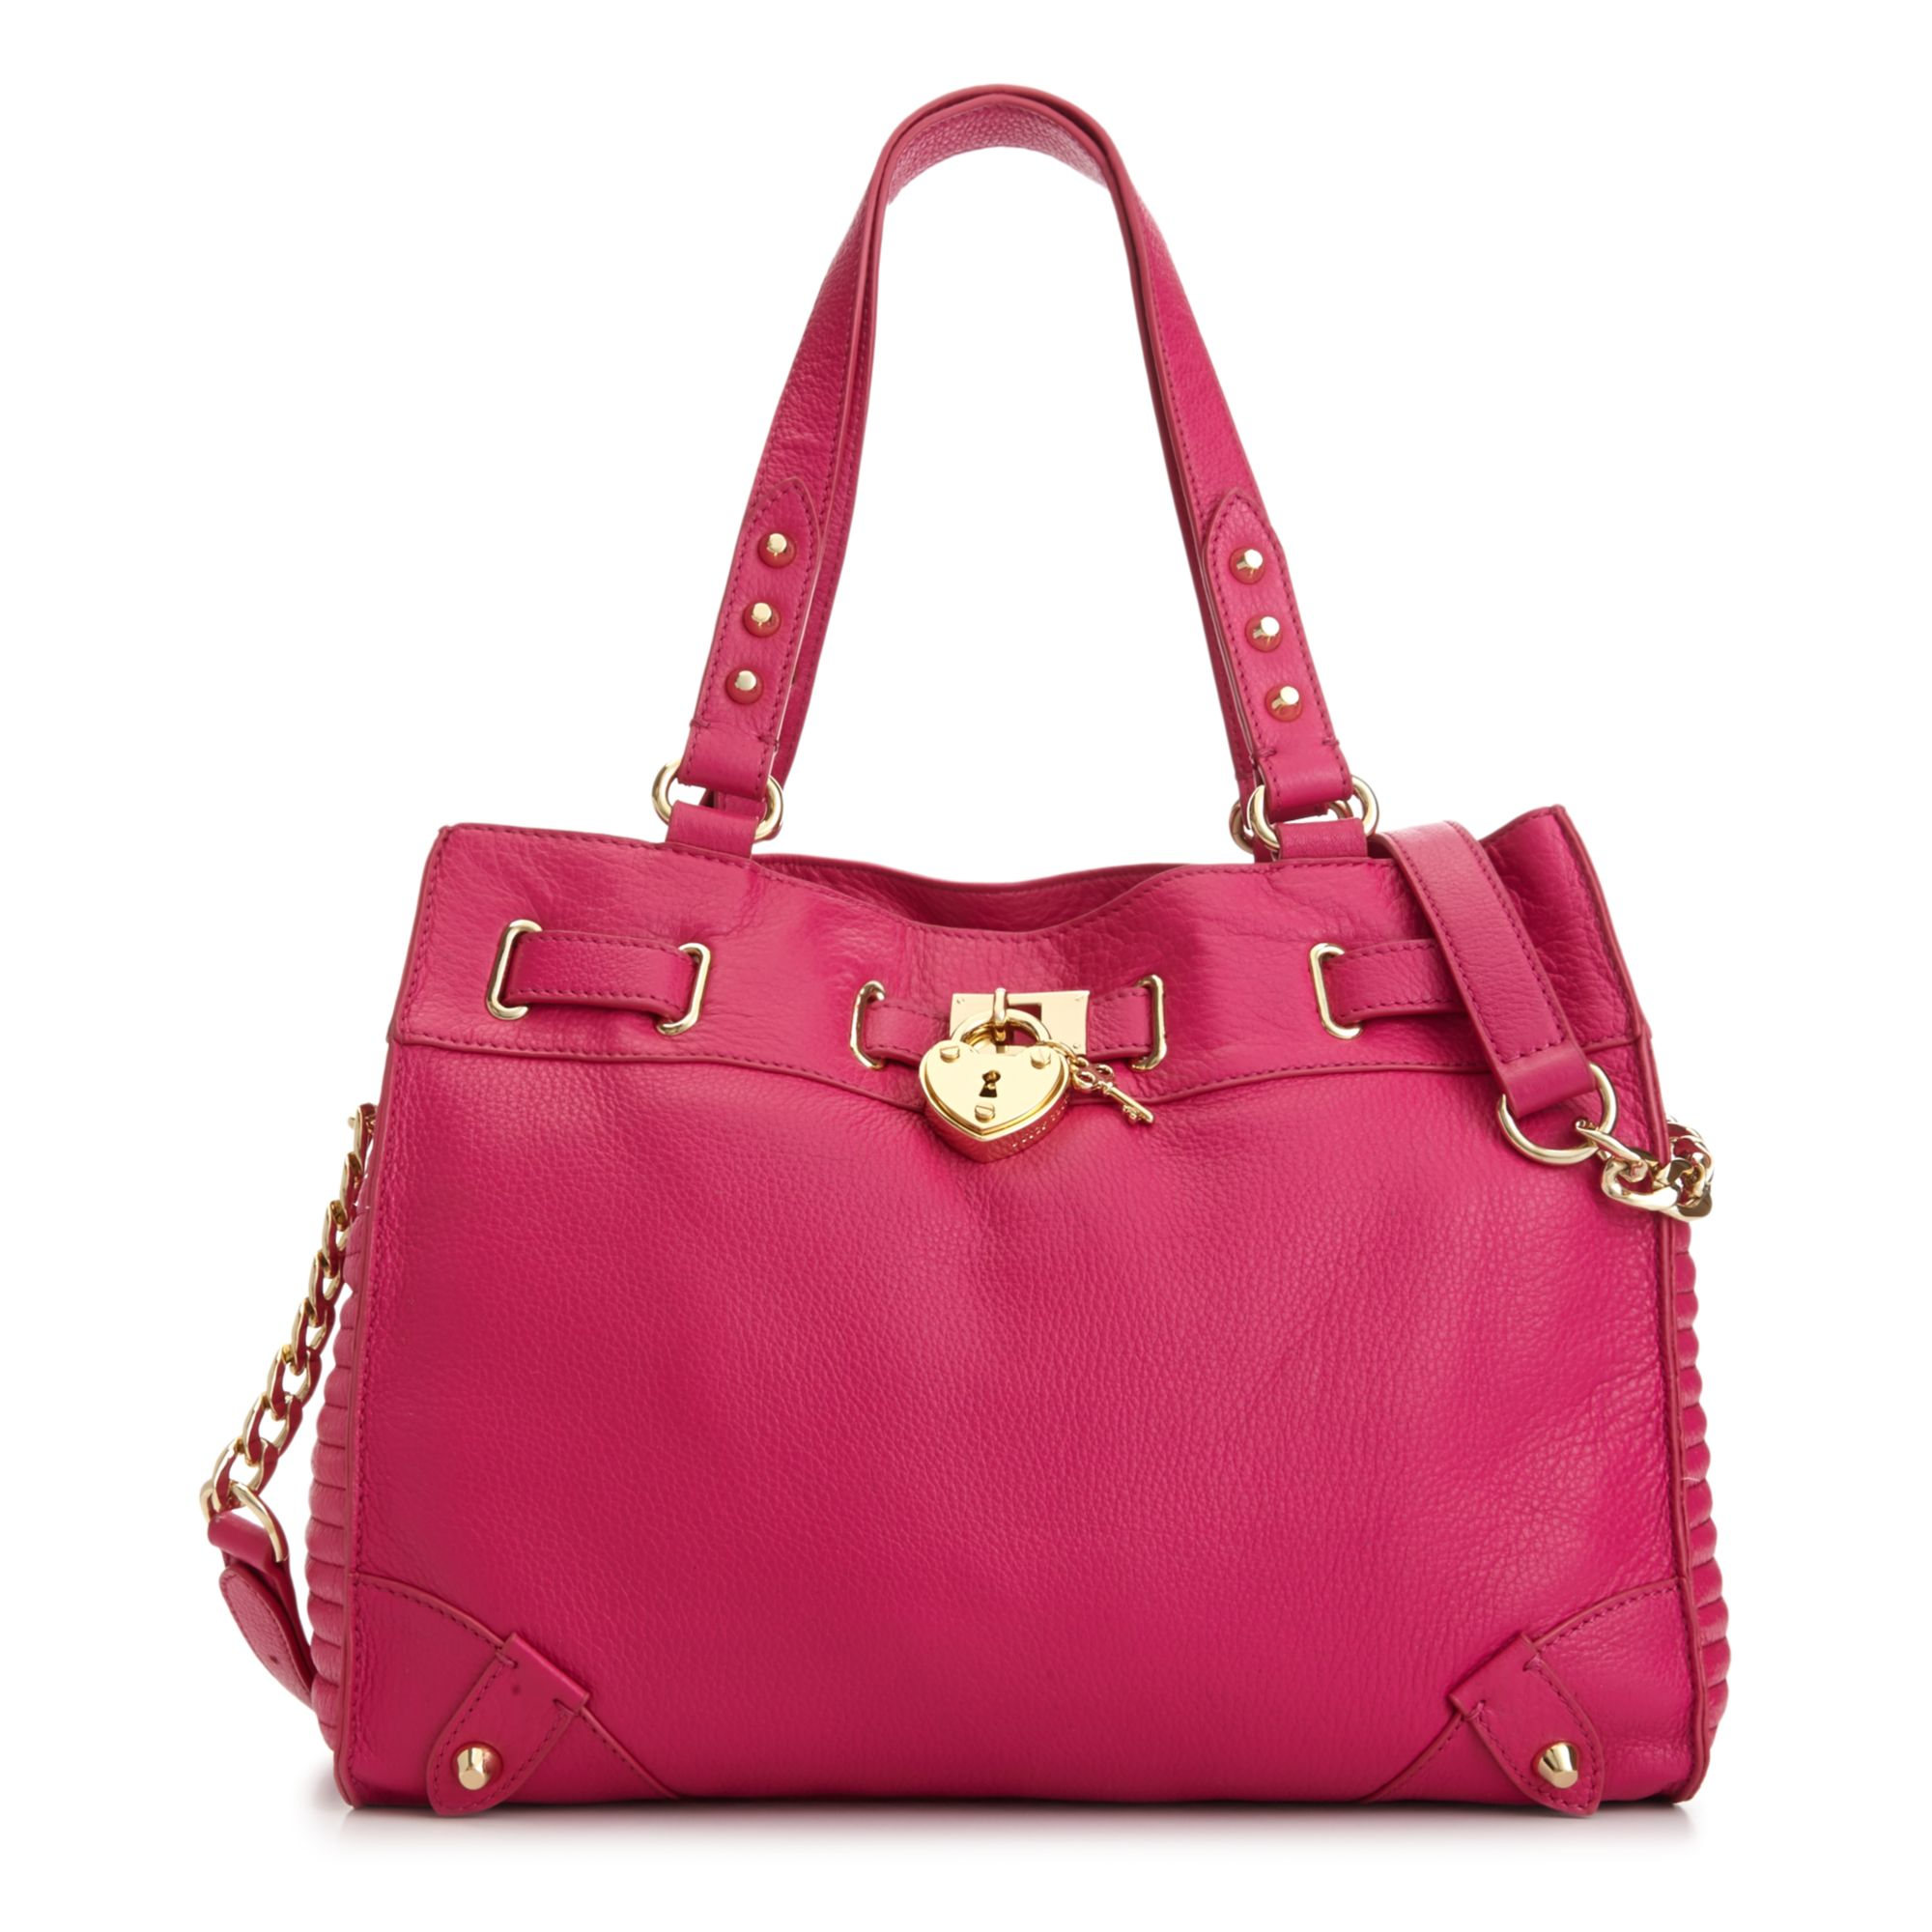 Lyst - Juicy couture Robertson Leather Daydreamer Bag in Pink